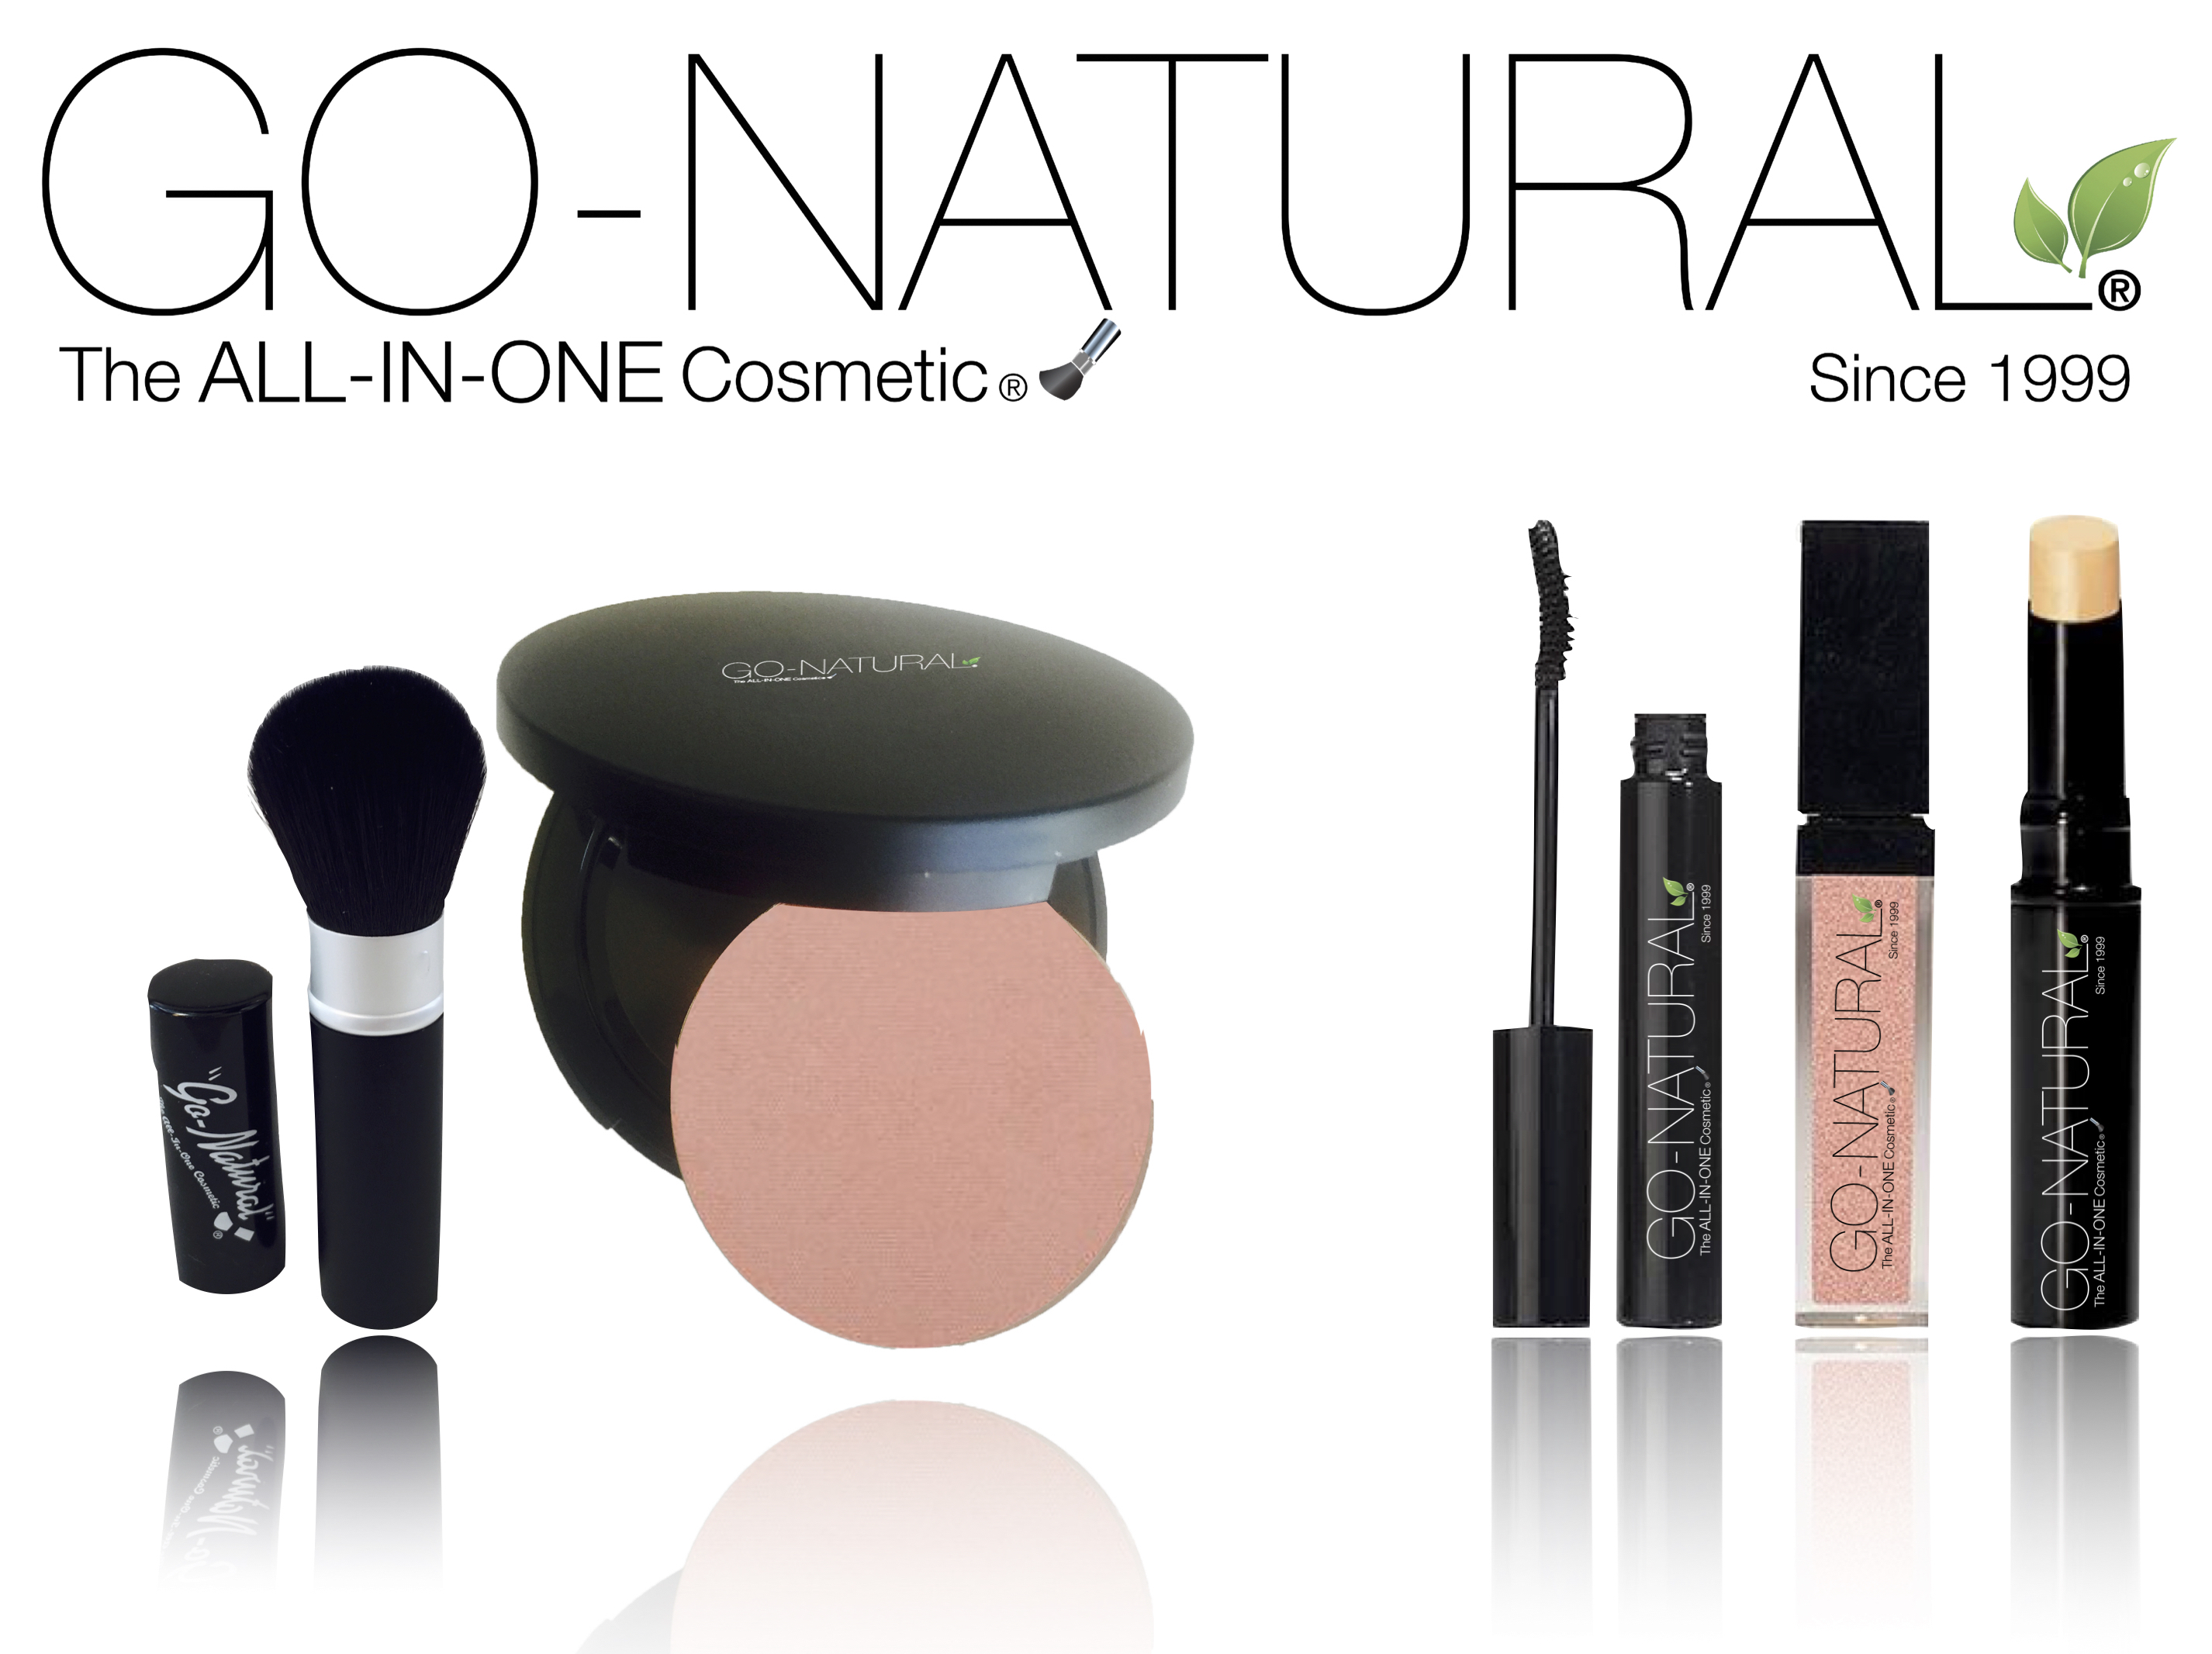 Go-Natural The All-In-One Cosmetic Makeup Shop USA and Canada